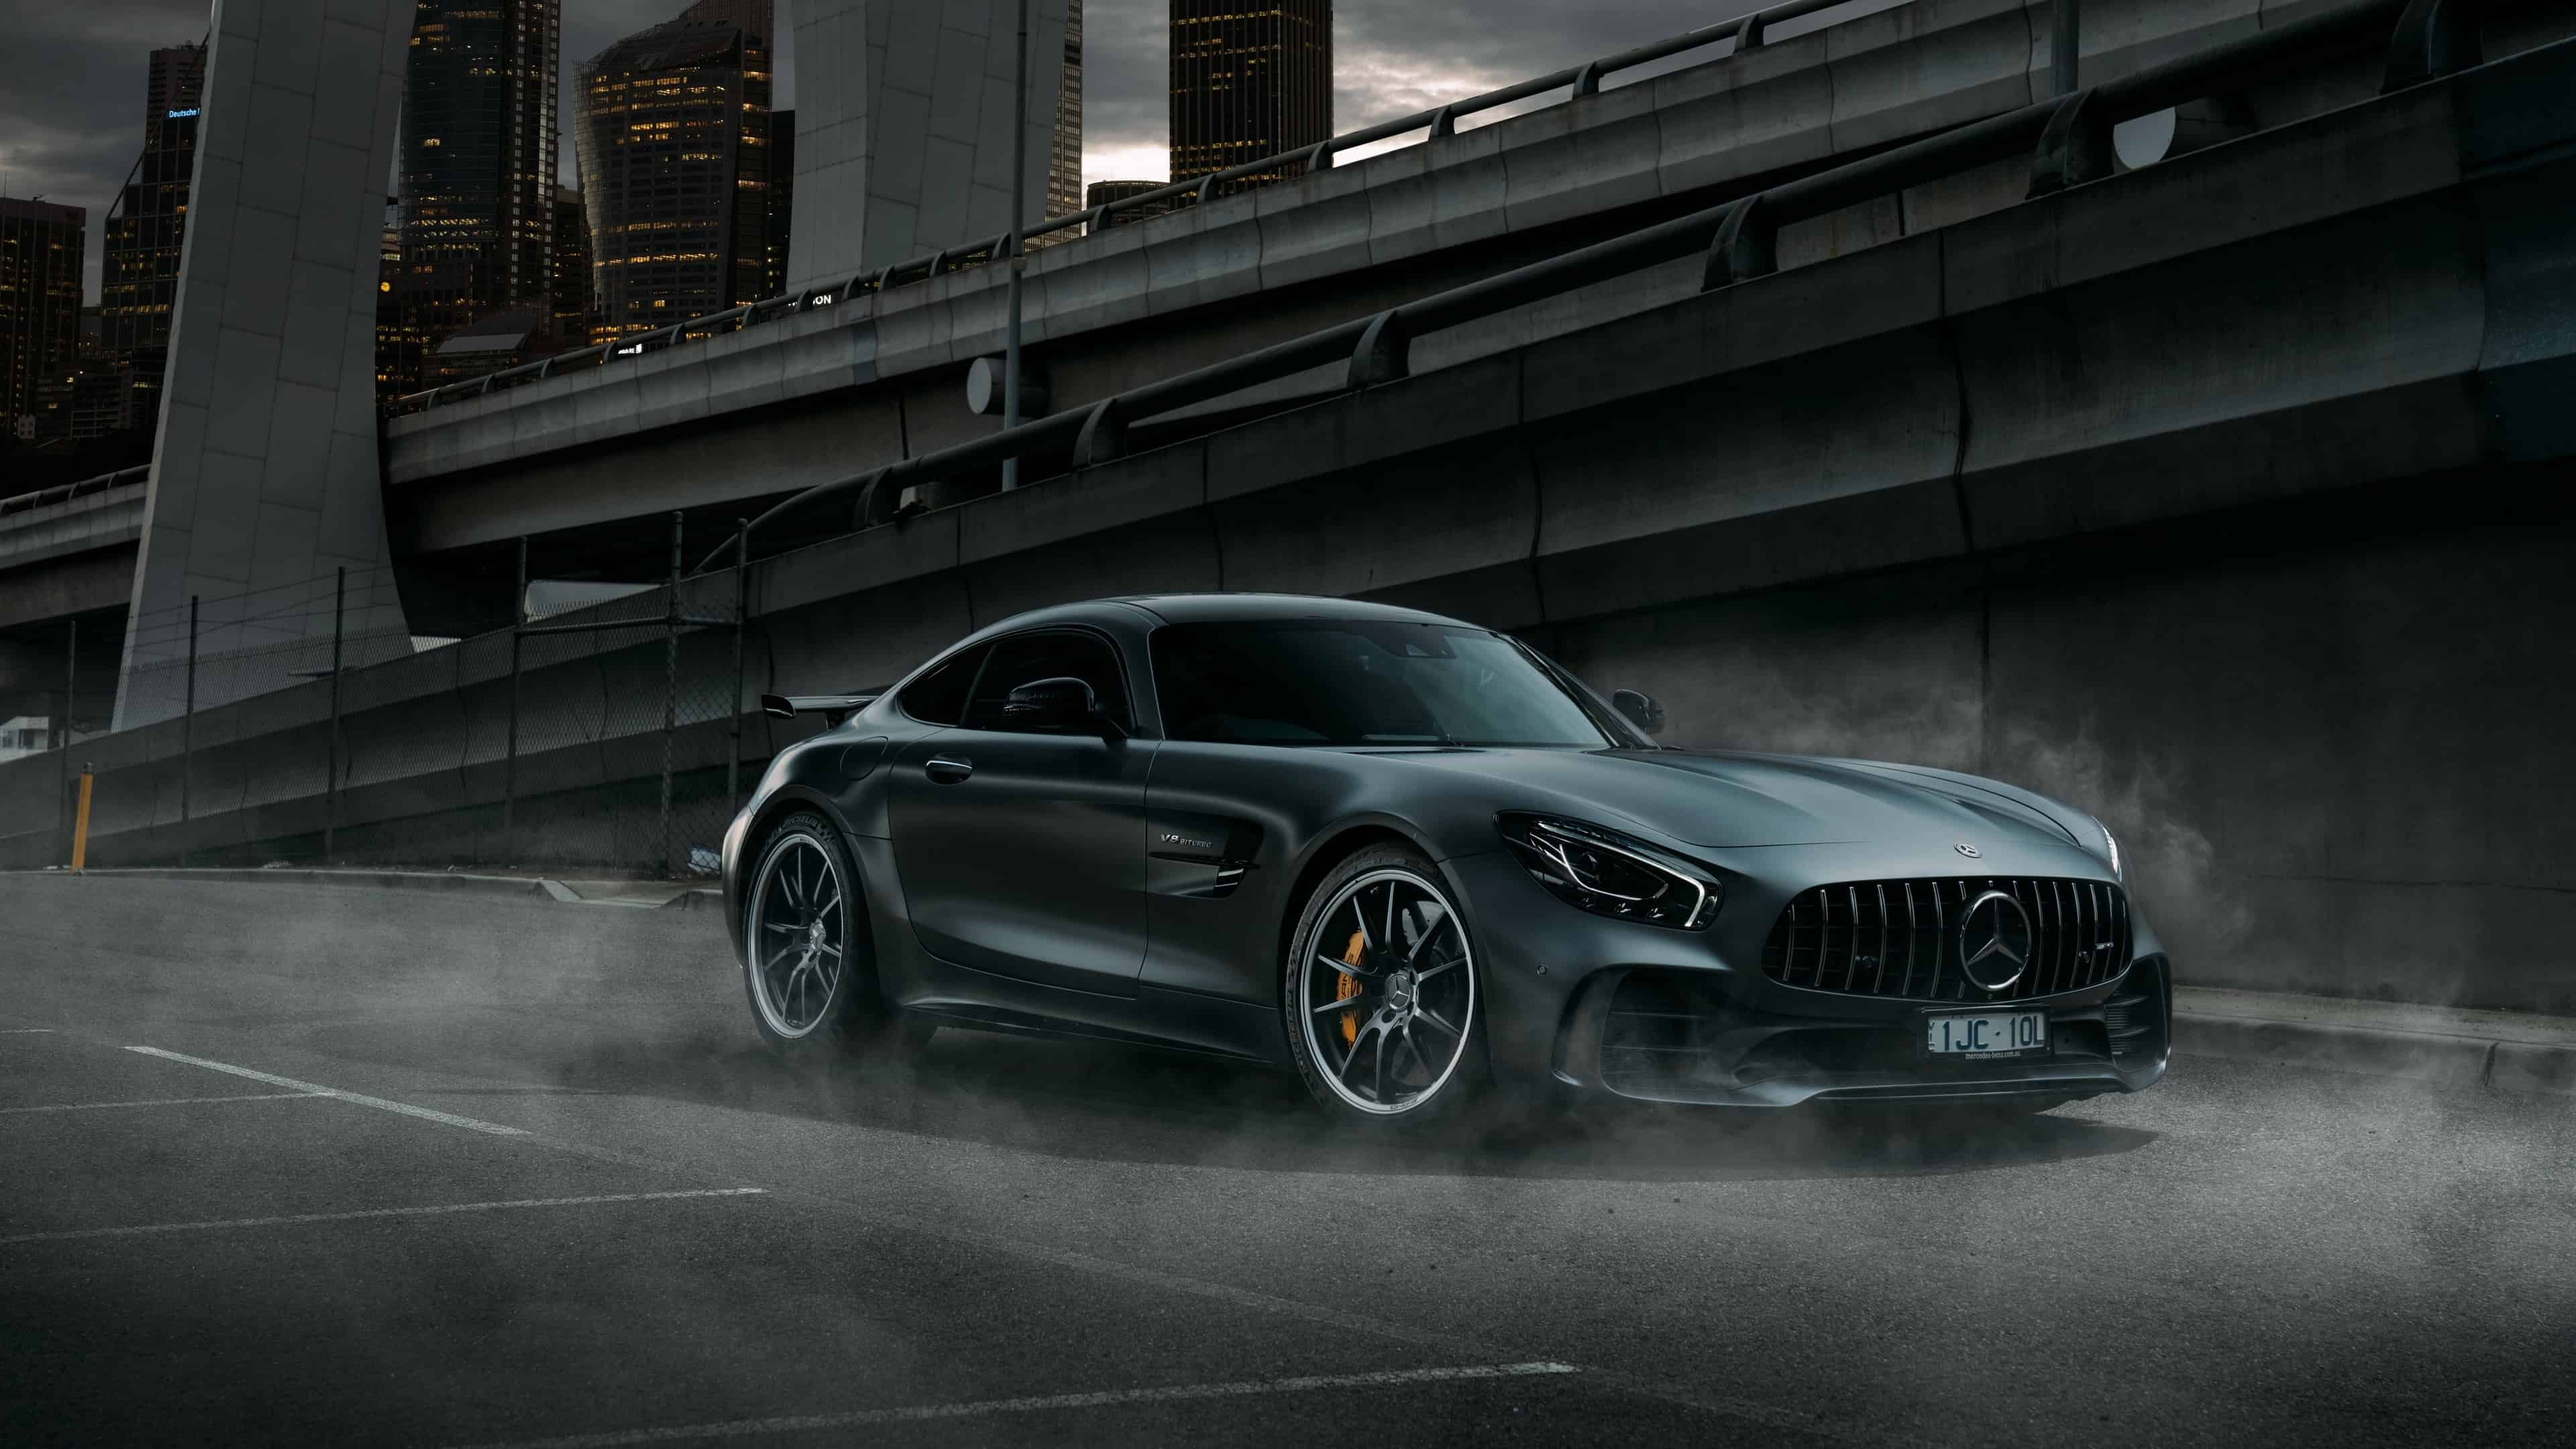 mercedes benz gt r amg uhd 4k wallpaper